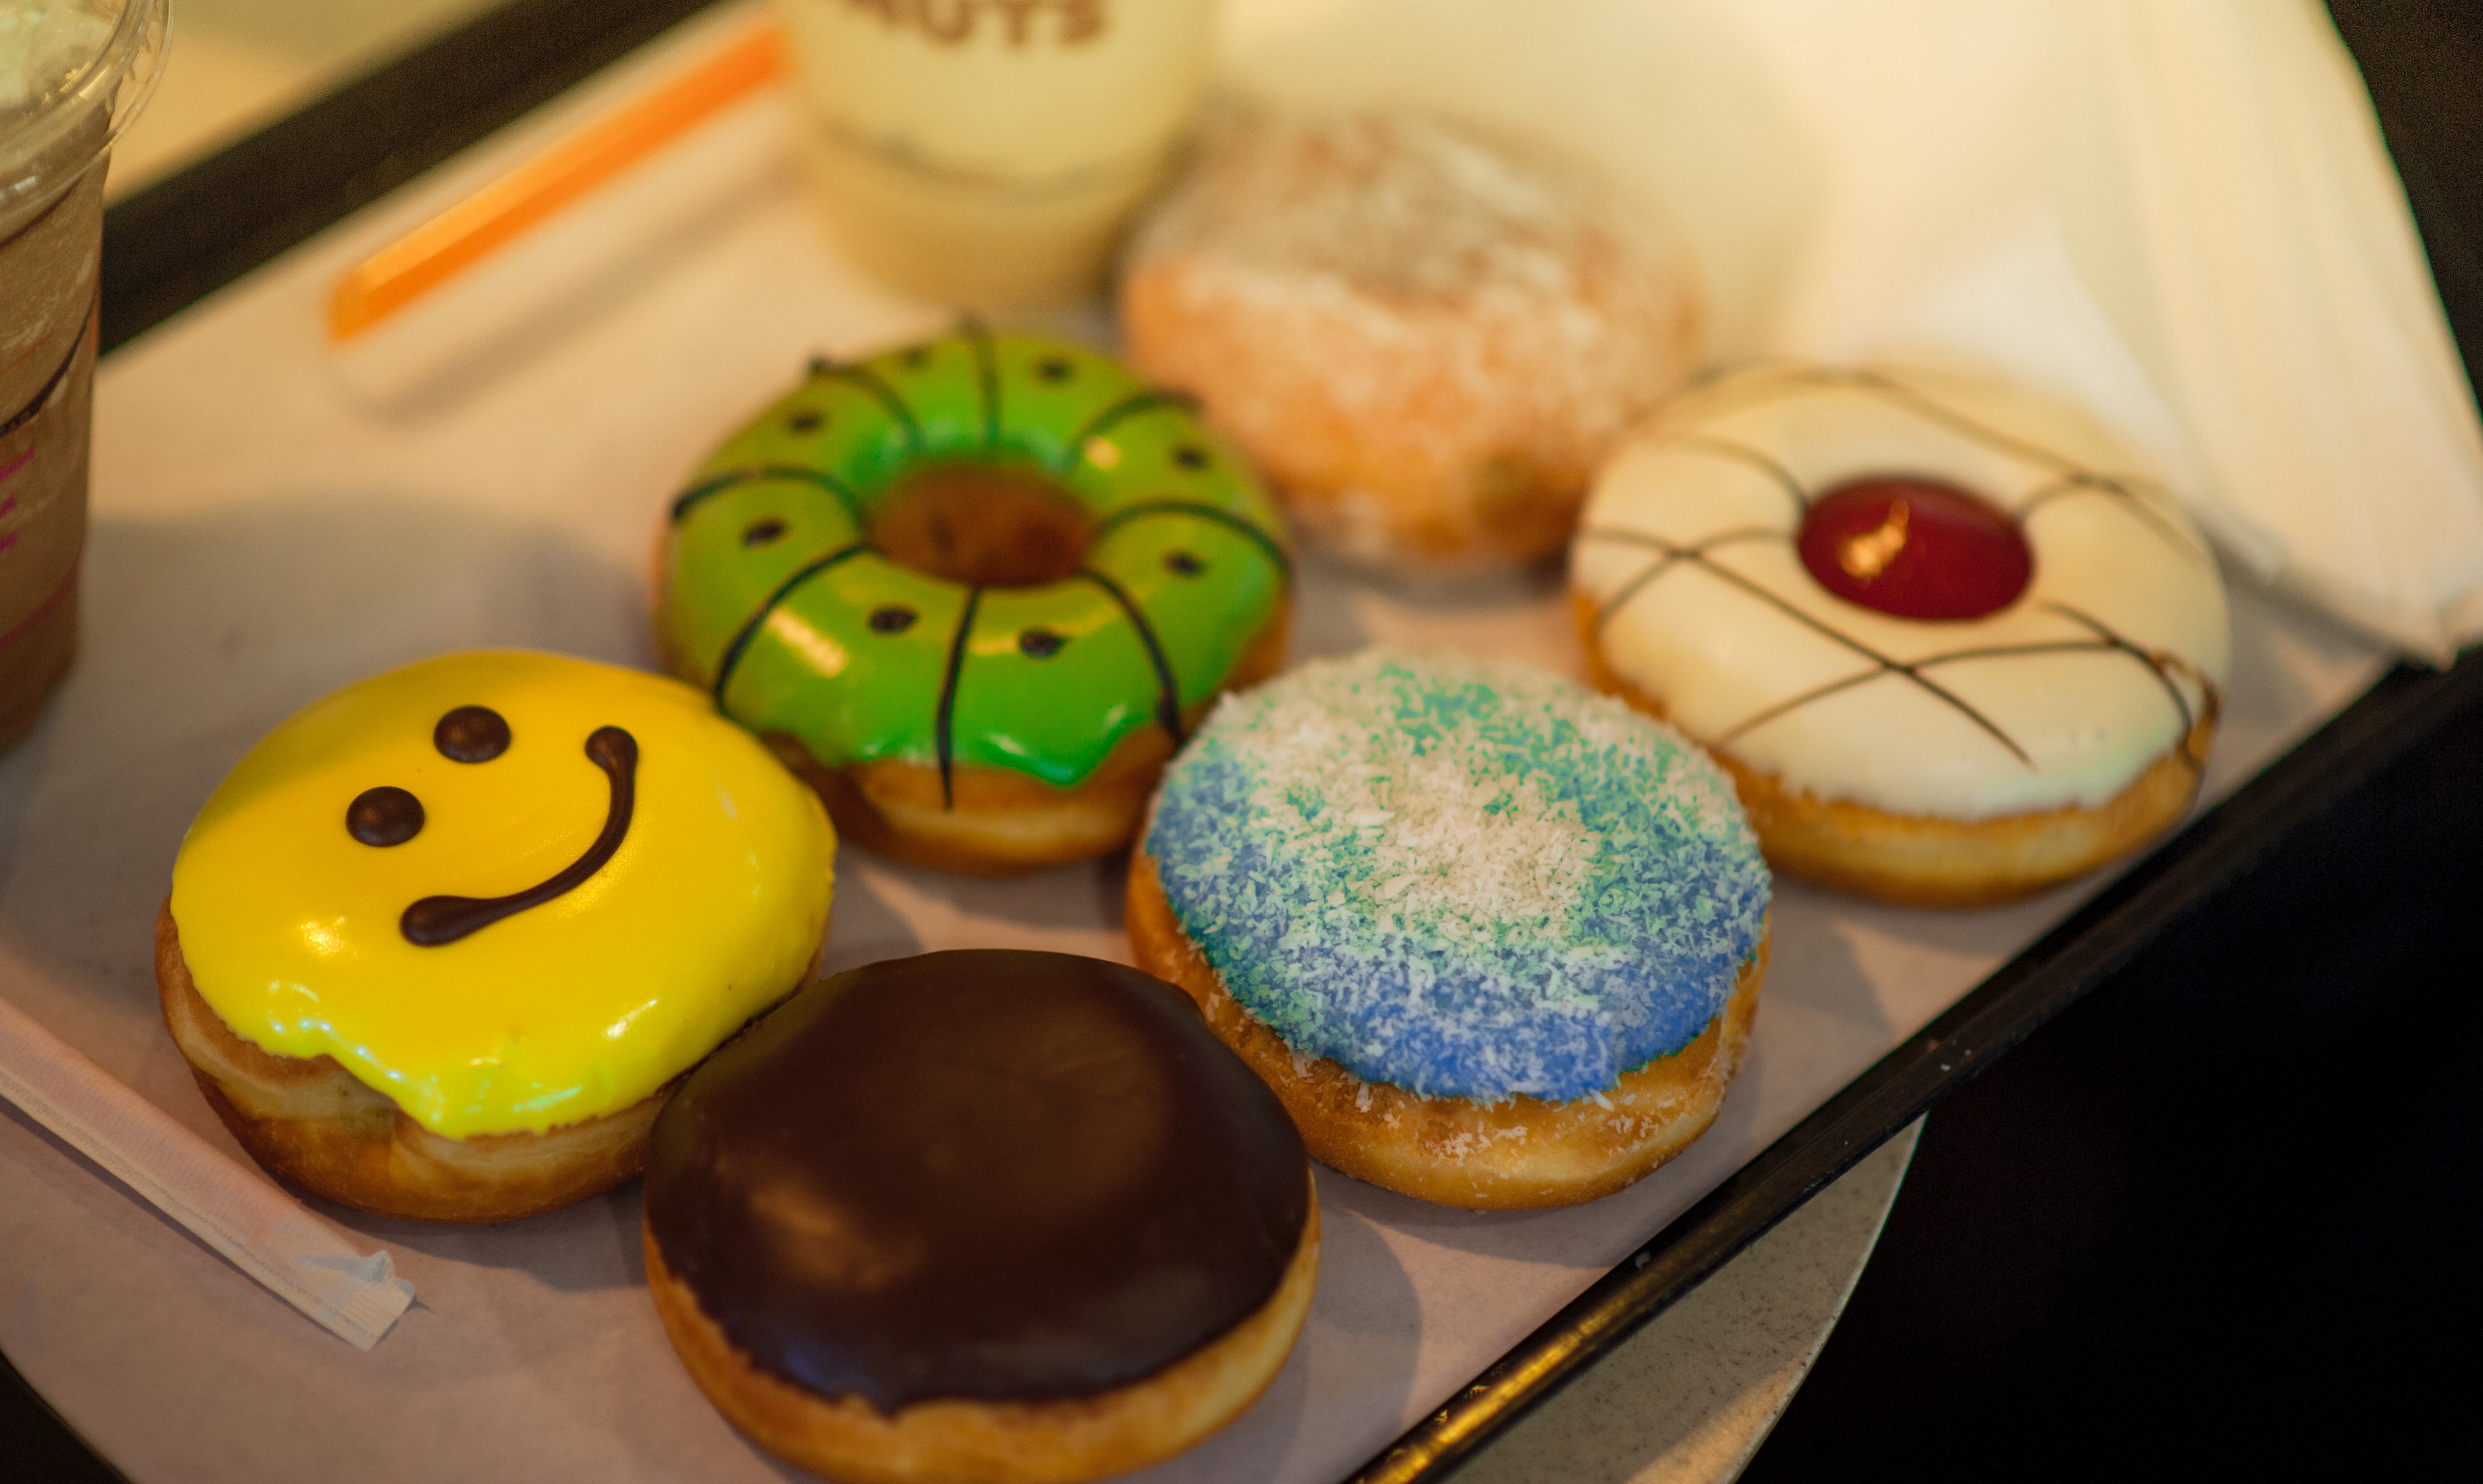 Shallow Focus Photography of Assorted Flavored Donuts, Pastry, Indulgence, Homemade, Smiley, HQ Photo